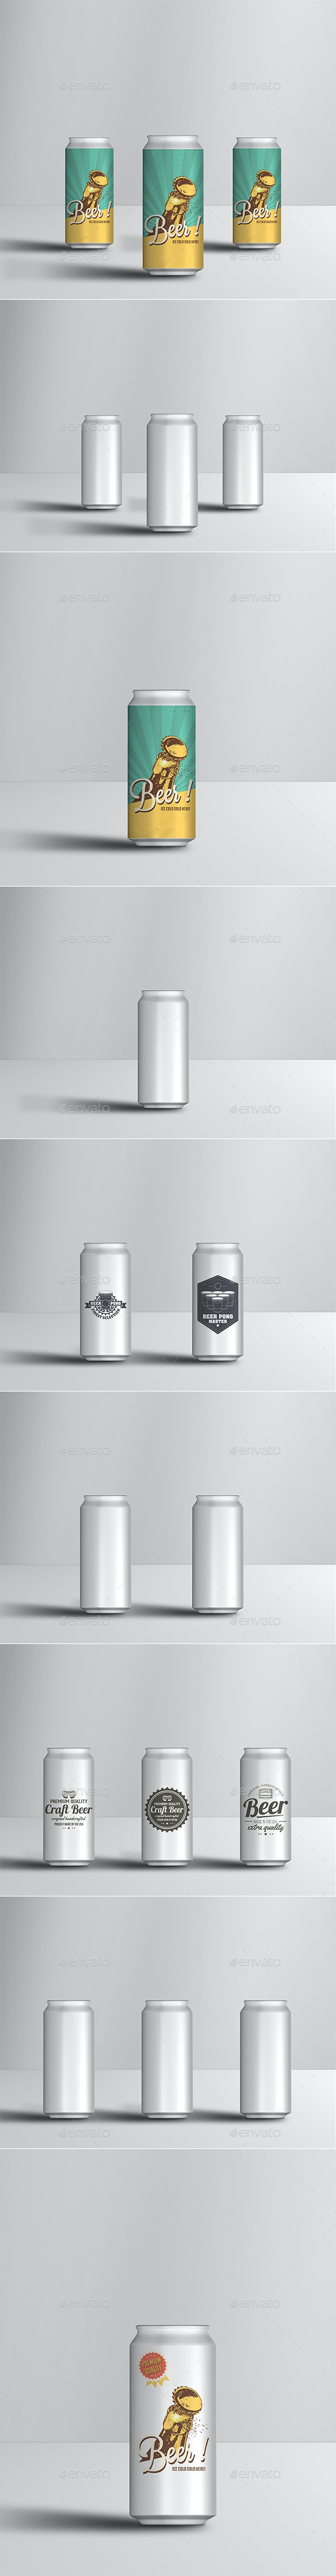 500ml Soda or Beer Can Mock-up - Food and Drink Packaging